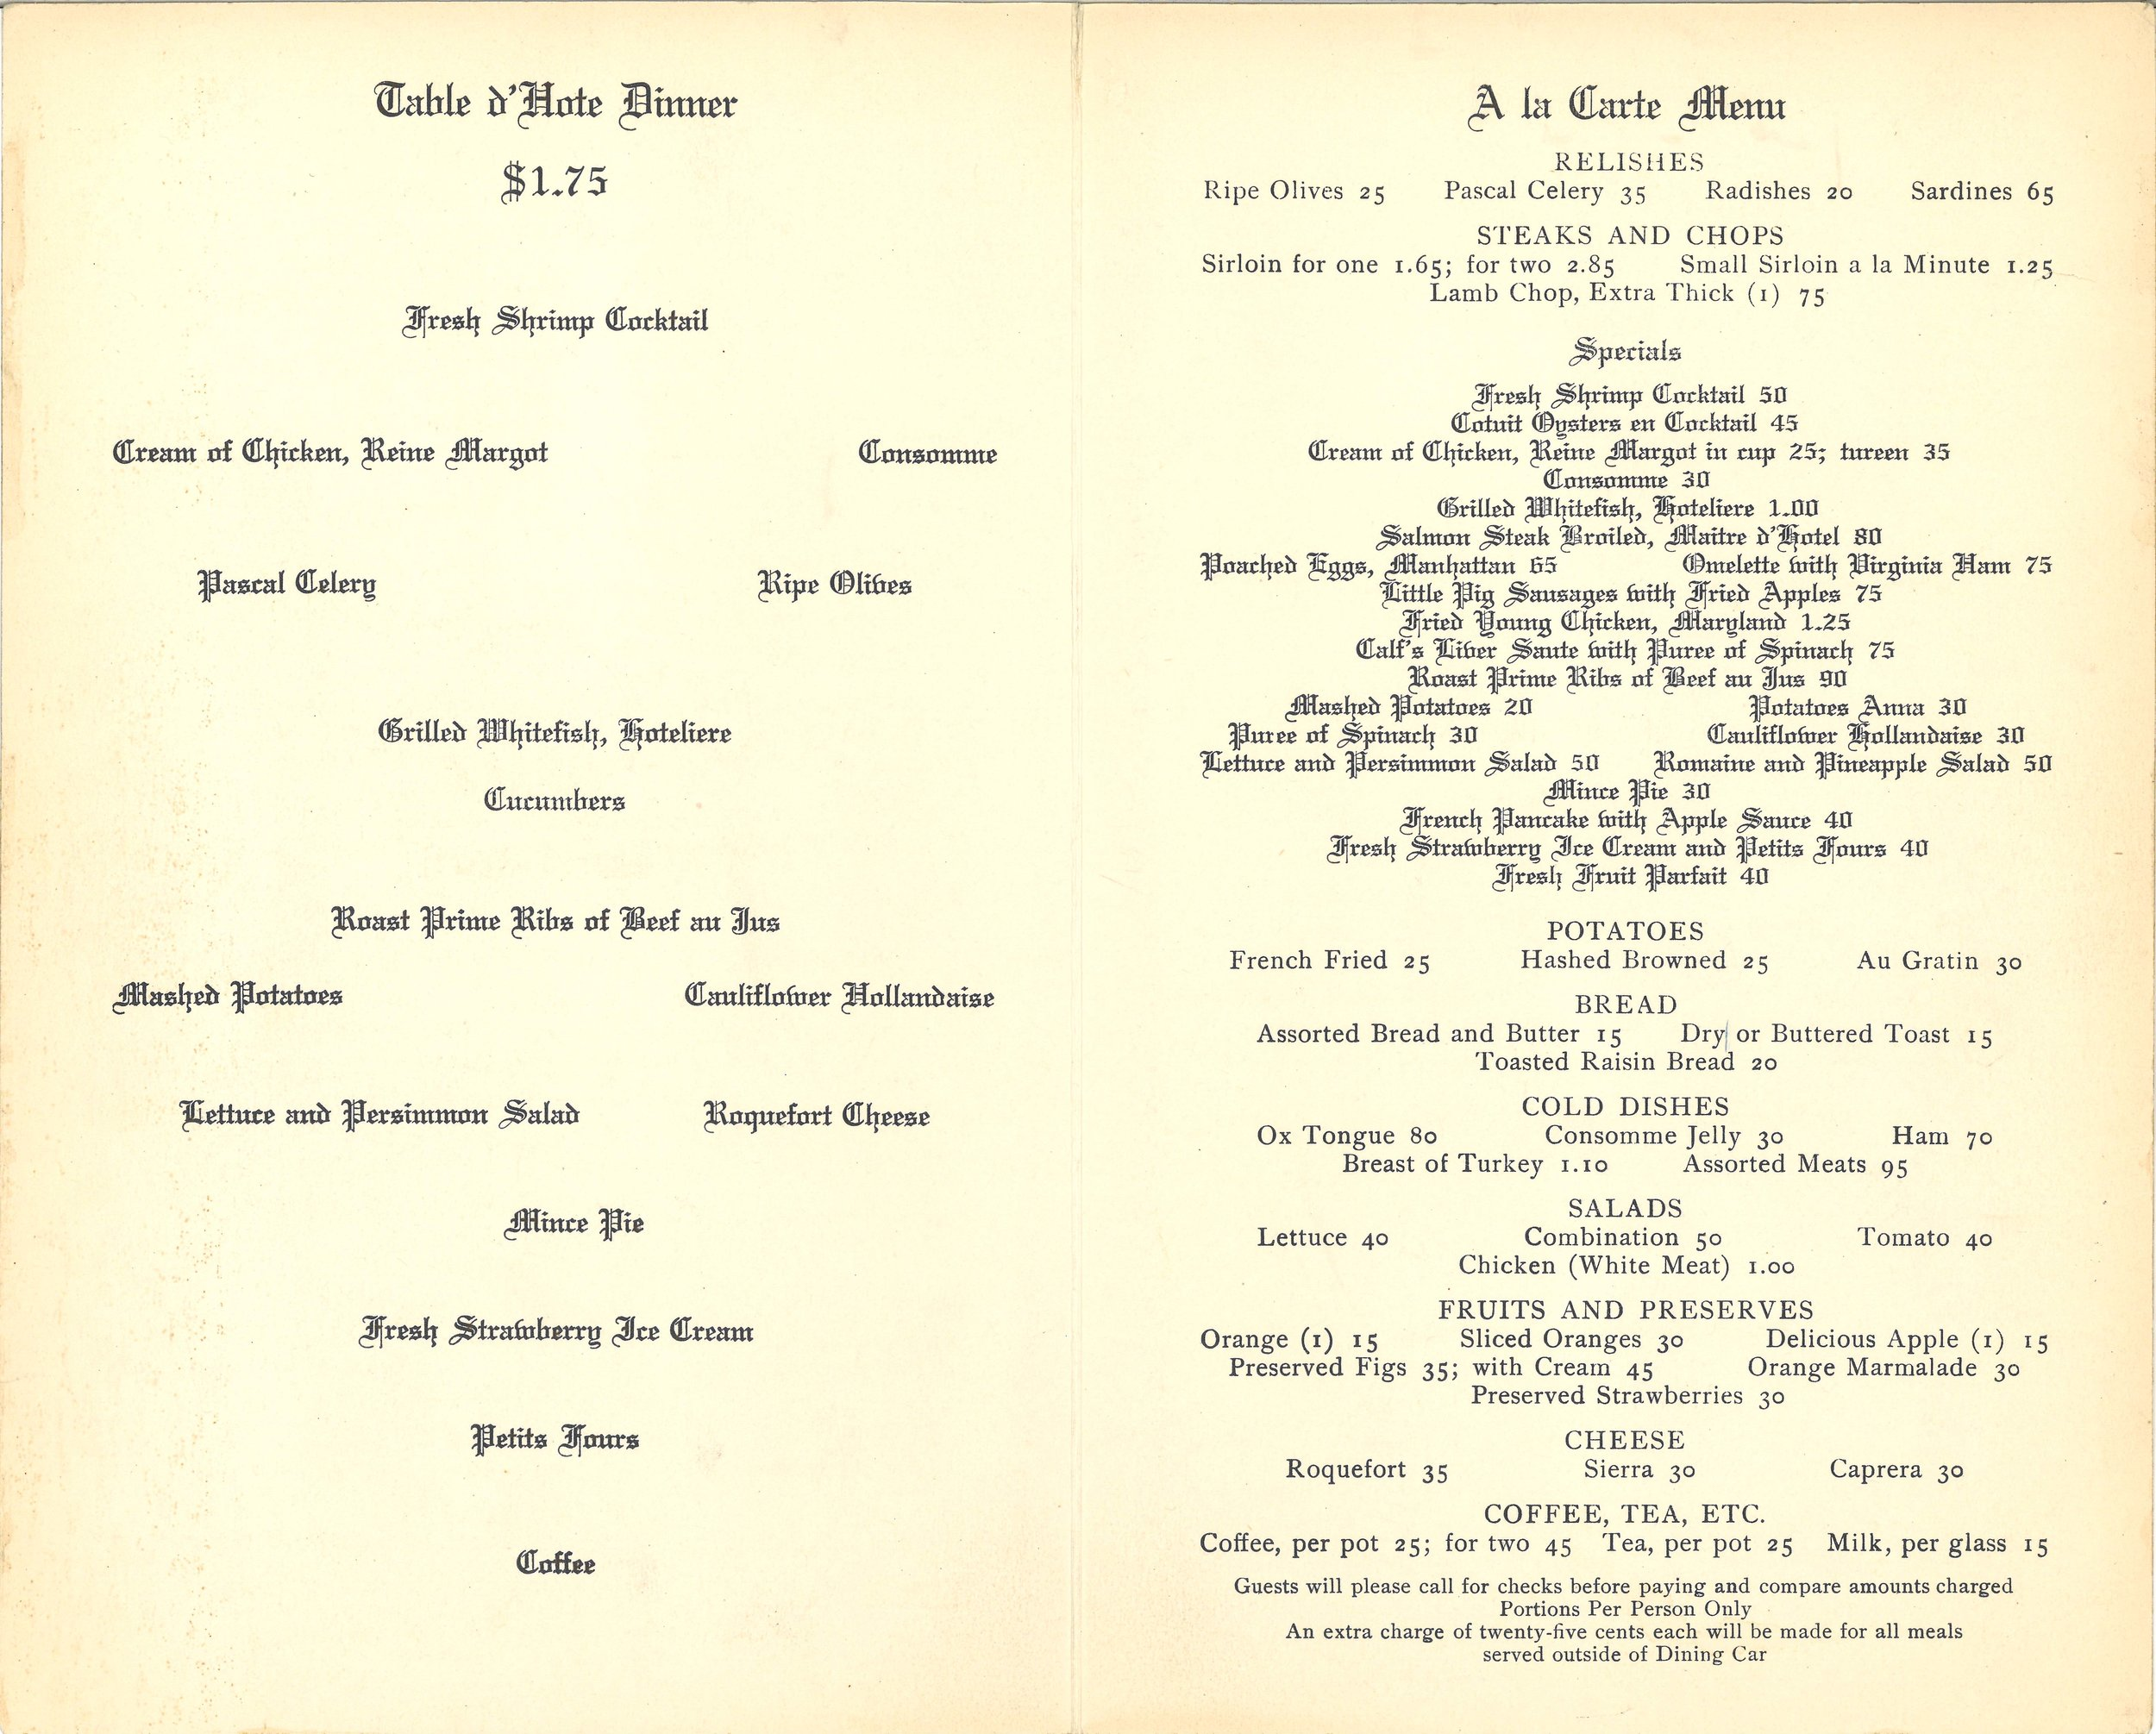 Santa Fe Menu The Chief December 1926_Sm2.jpg